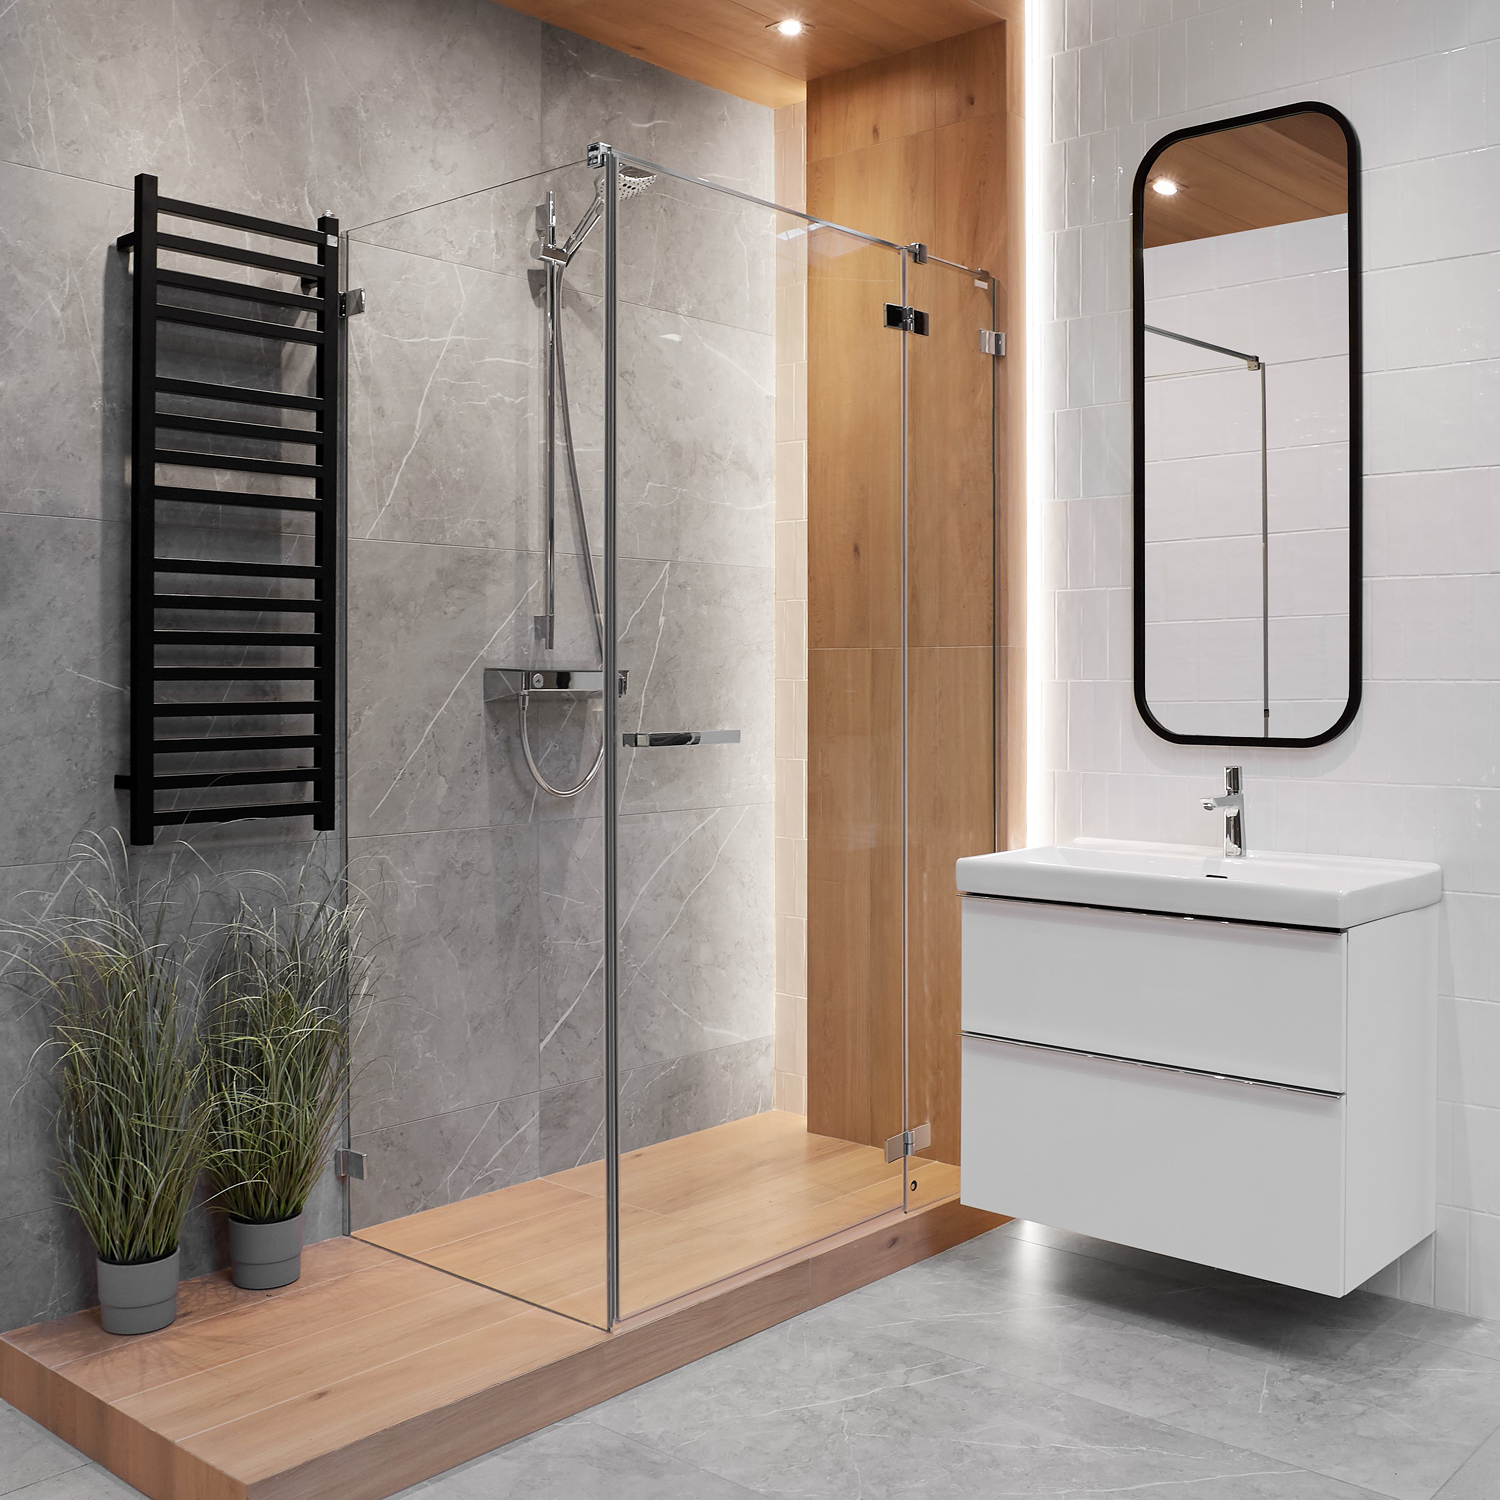 Katania Grey Kamien I Drewno W Lazience Grey Bathrooms House Design Home